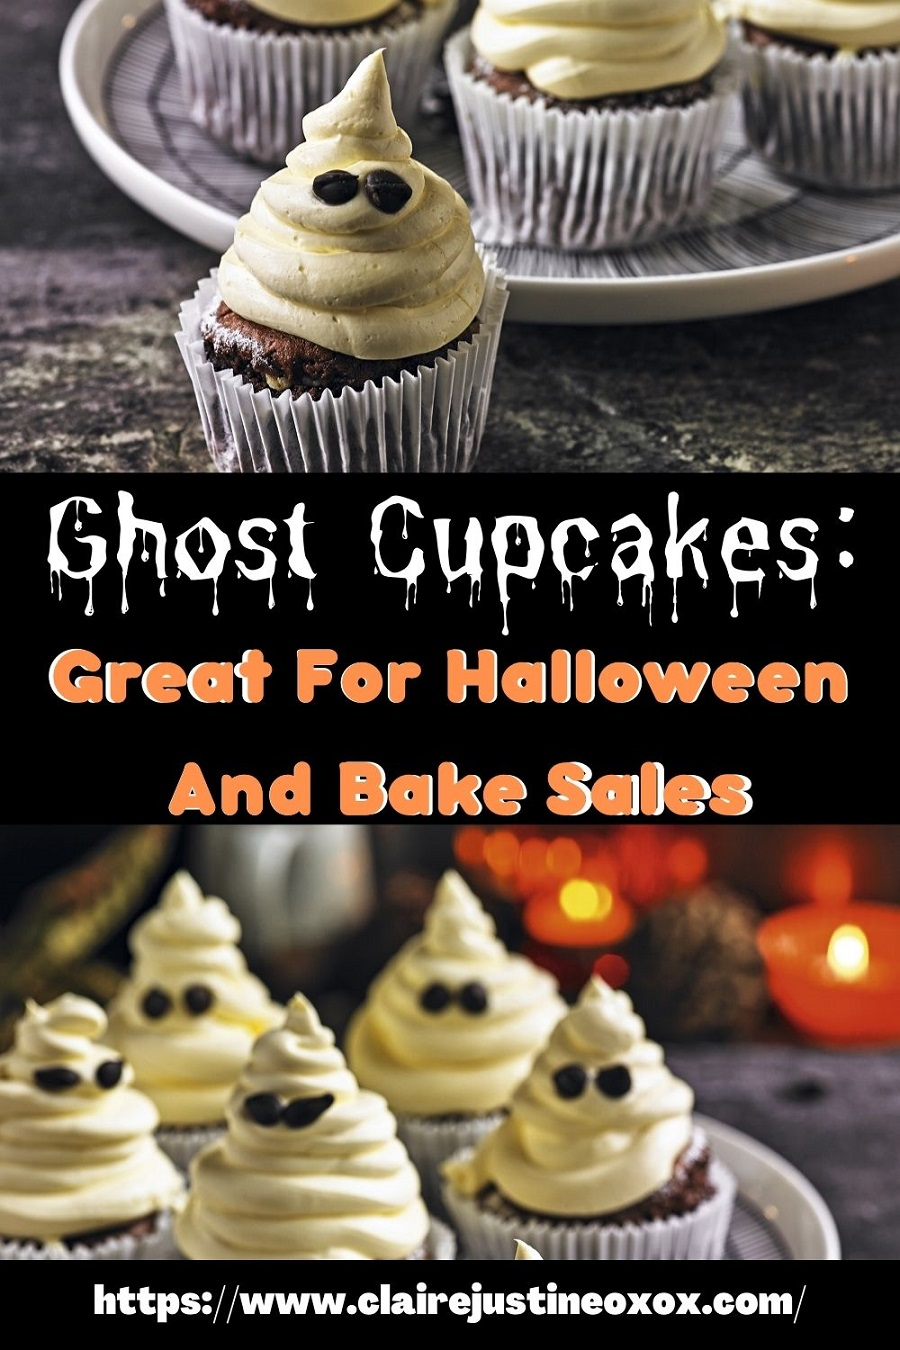 Ghost Cupcakes: Great For Halloween And Bake Sales